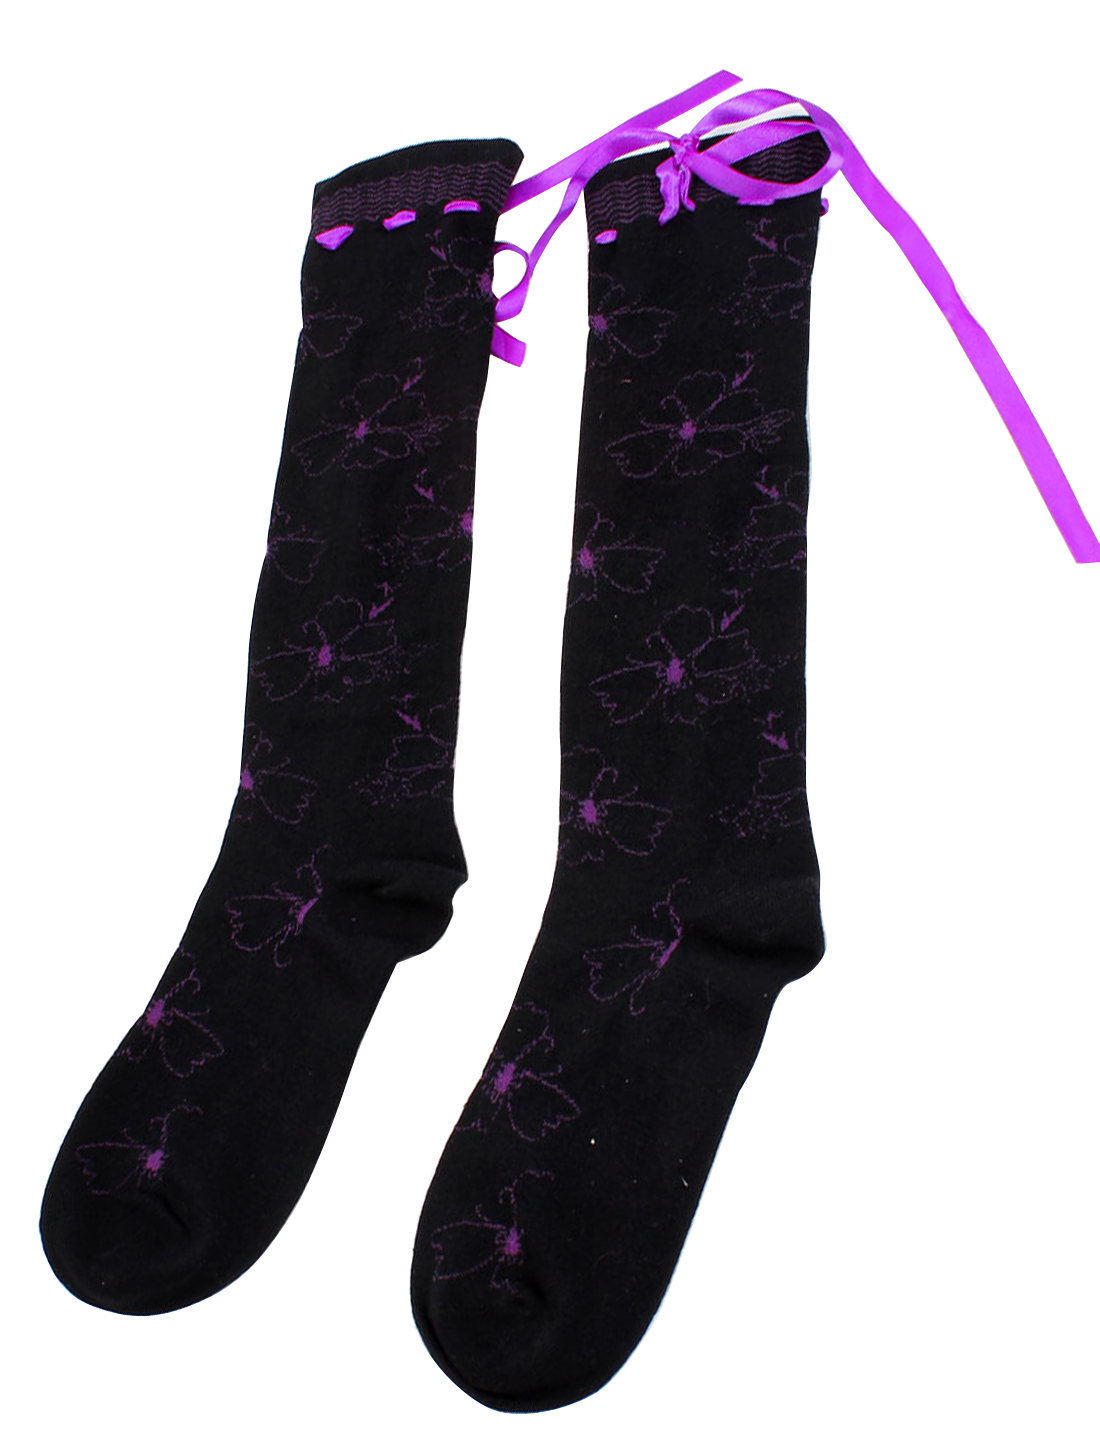 Women Purple Bowknot Detailing Stretchy Cuff Knee High Leg Warm Socks Black Pair